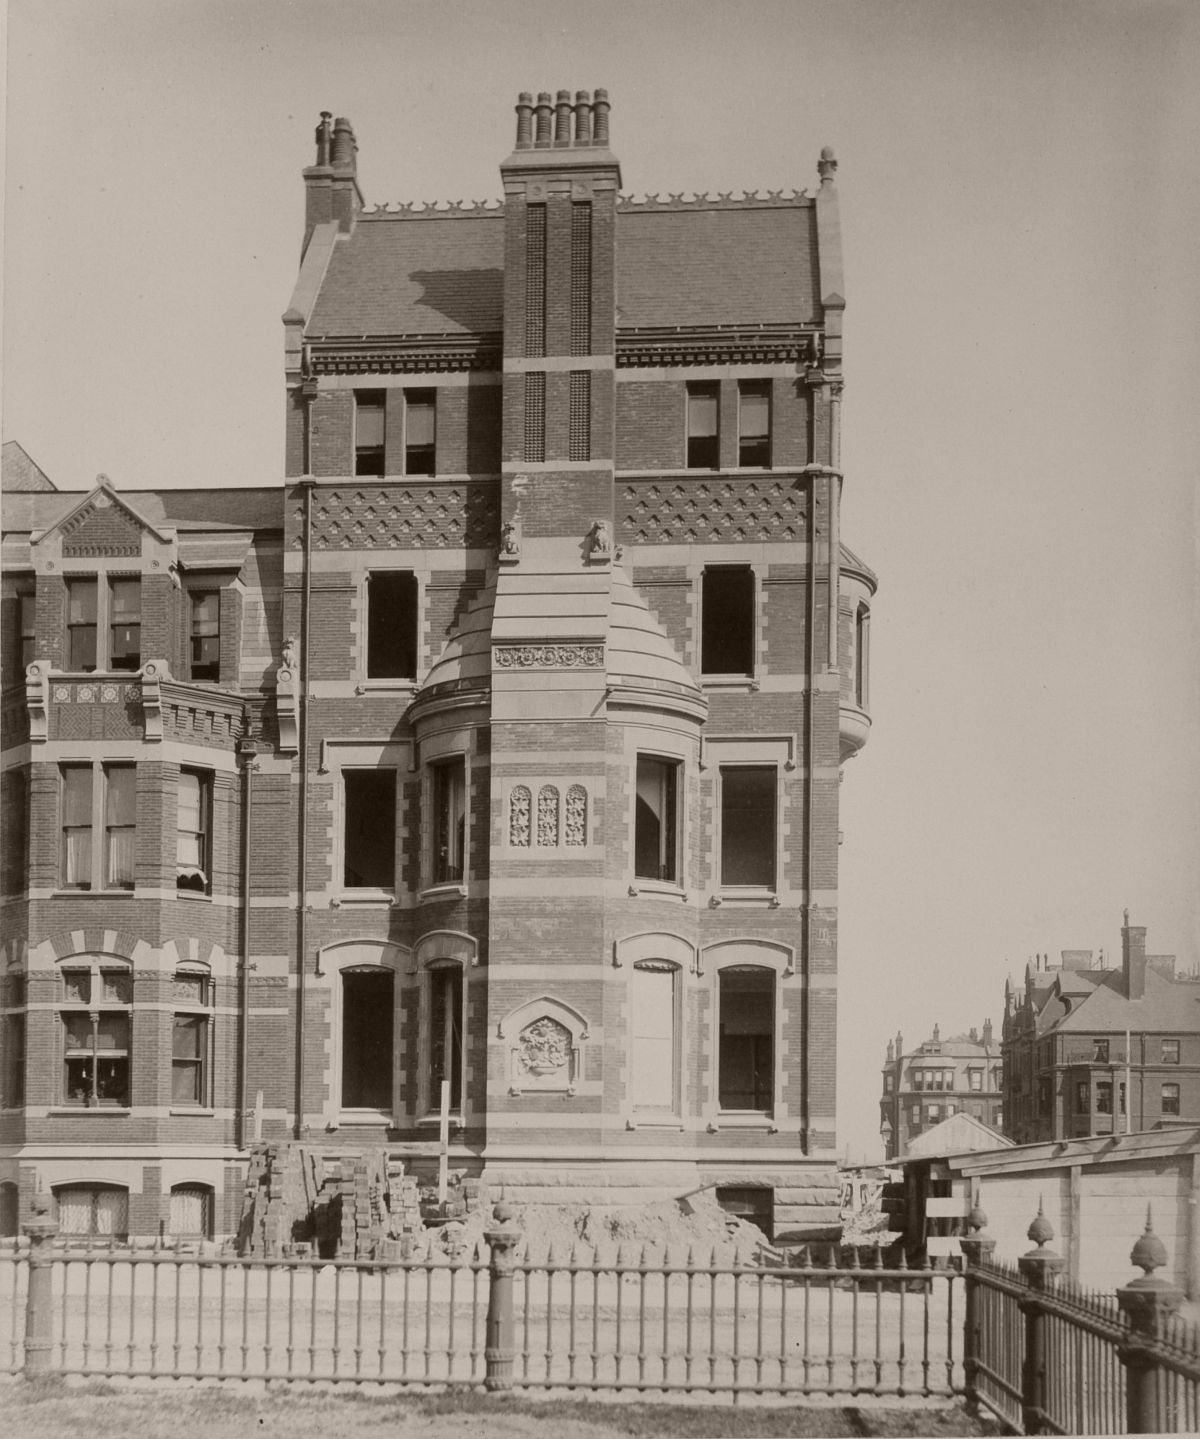 21 Fairfield (ca. 1883), photograph by Albert Levy; Ryerson and Burnham Libraries Book Collection, The Art Institute of Chicago